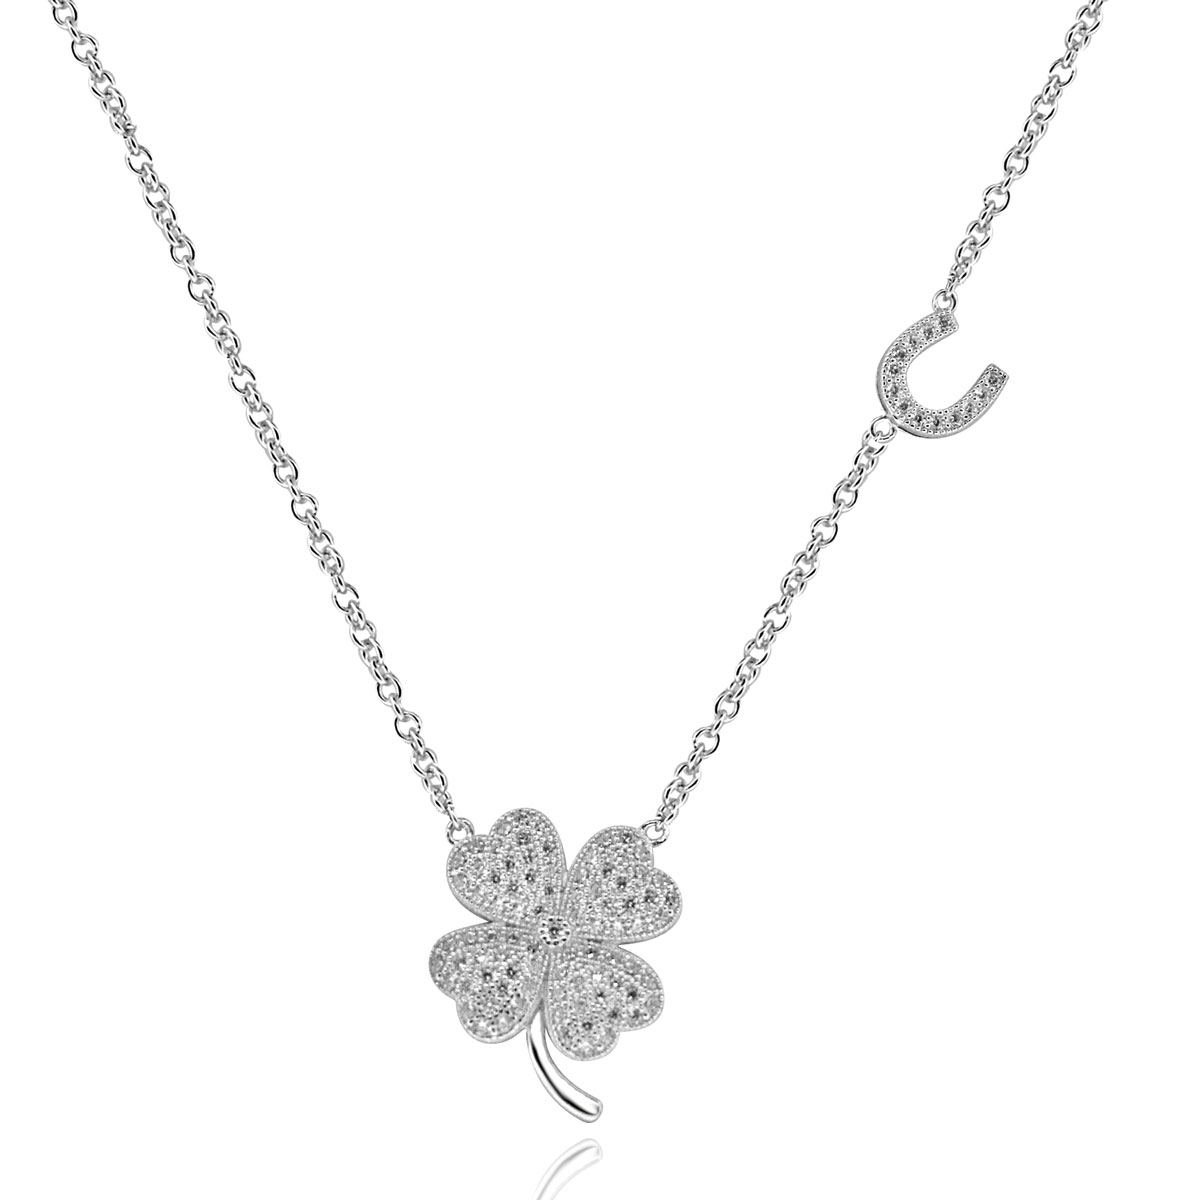 Cz Four Leaf Clover Pendant Necklace In Sterling Silver